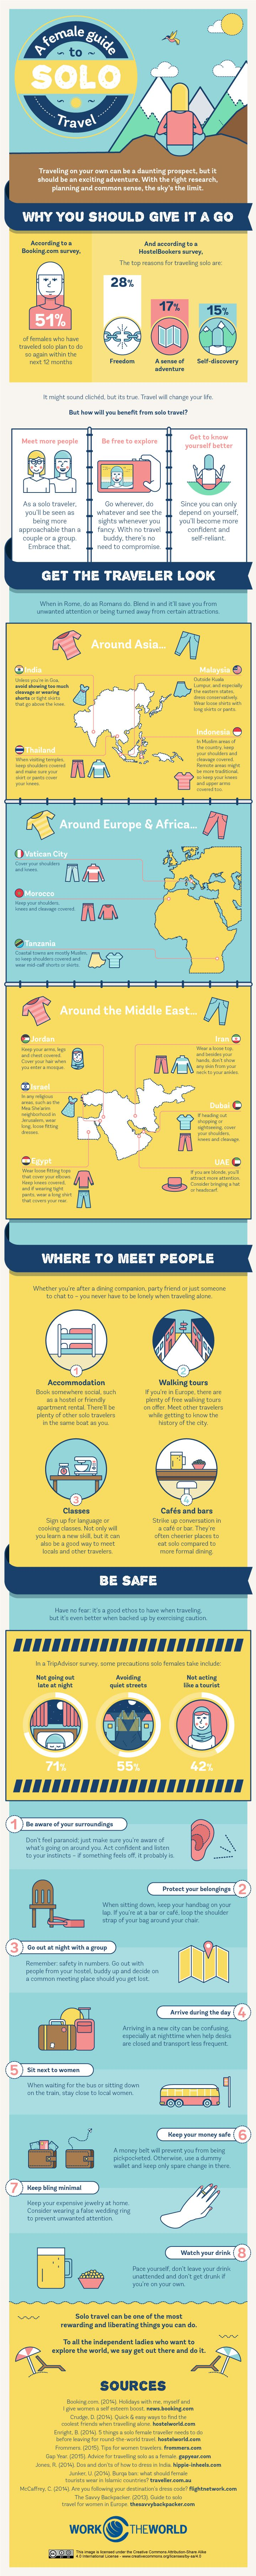 A Female Guide To Solo Travel Infographic   A New Life Wandering